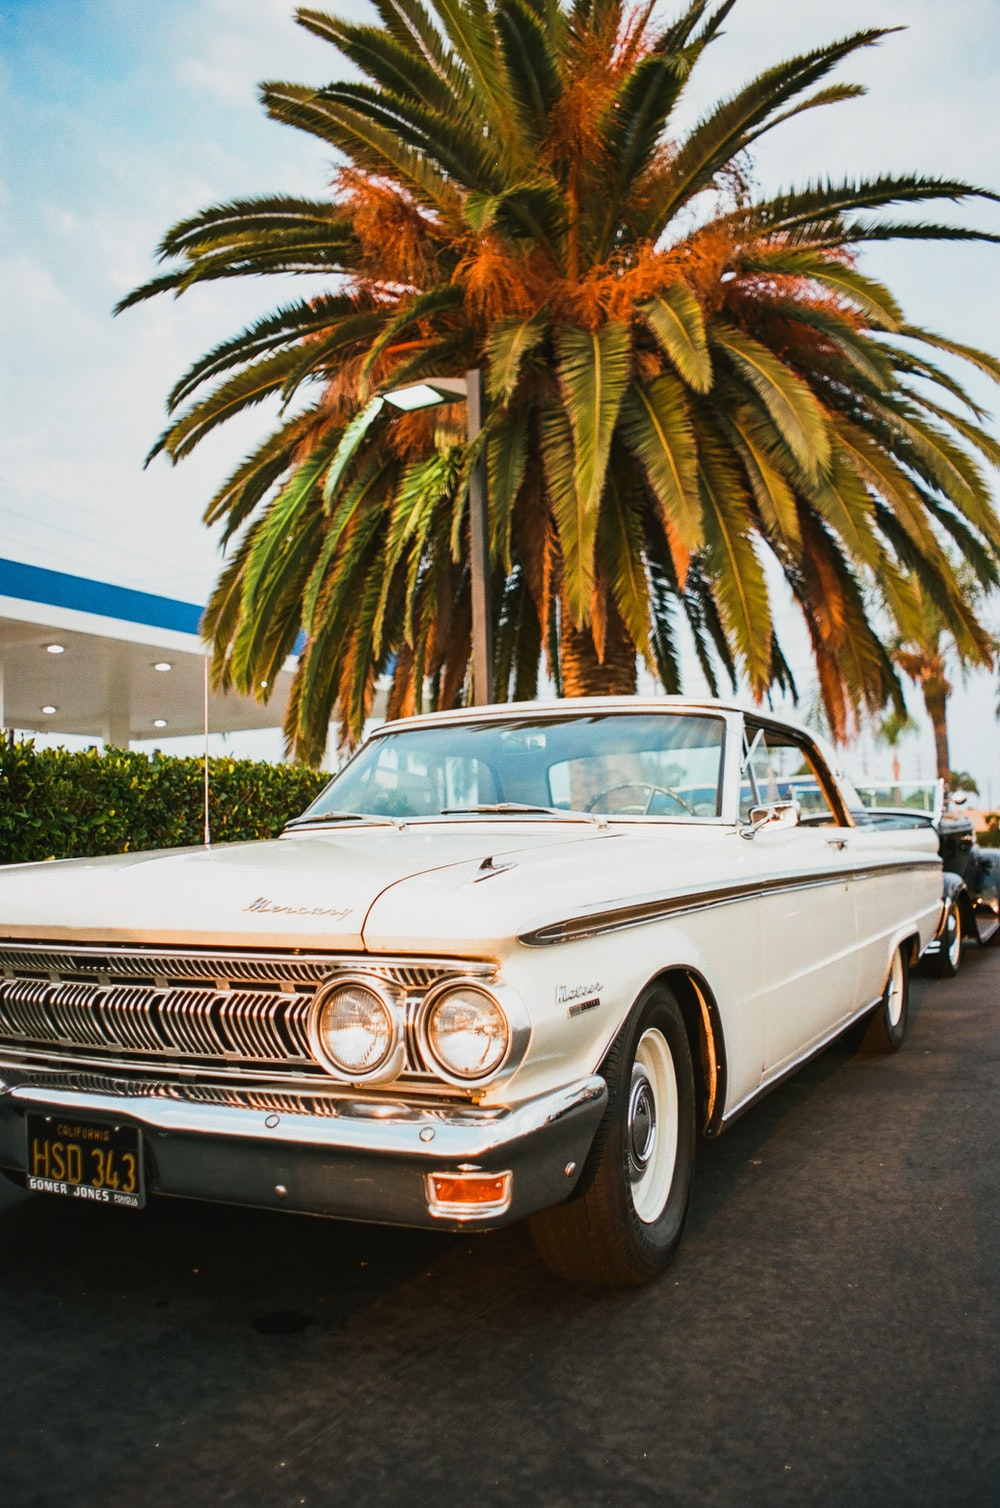 white and blue classic car parked near palm trees during daytime